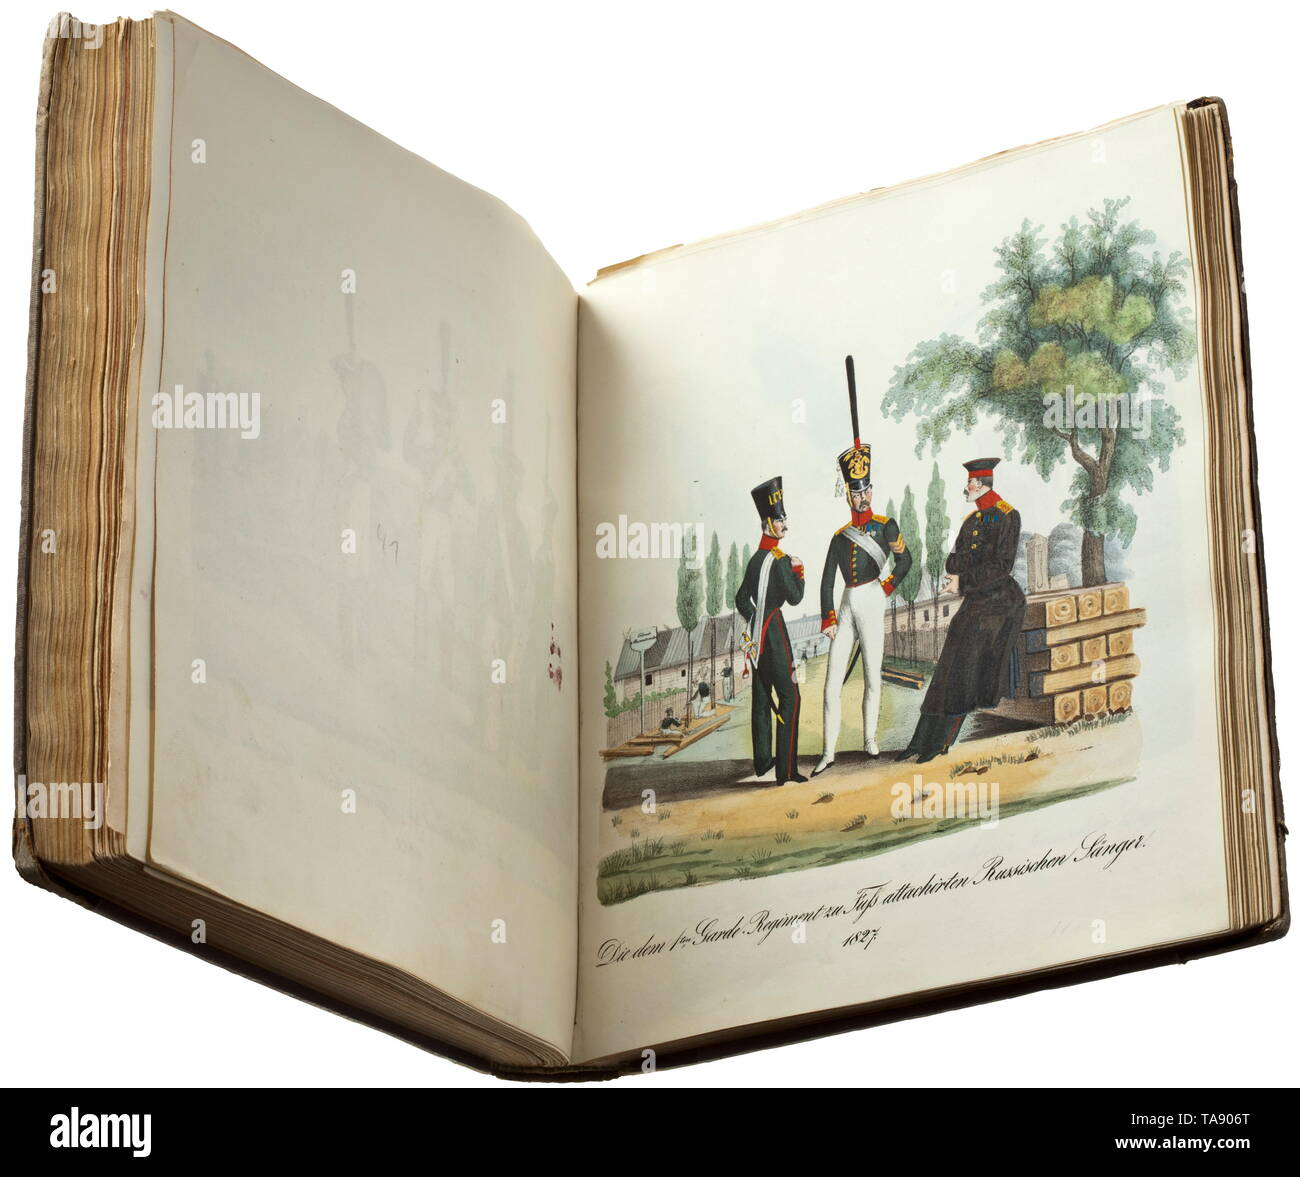 Die Uniformen der preußischen Garden - (tr. The uniforms of the Prussian Guards), published by Gropius Berlin, 1840 Illustrated volume entitled 'Die Uniformen der Garden - 1704 bis 1836' etc, significant reference work on the uniforms of the Prussian army, edited by Generalleutnant Wilhelm von Thümen. Published in Berlin from 1837 by George Gropius, in several consignments. Half-linen and leather binding, gold lettering. Dimensions 22.5 x 26 x 3.5 cm. Not checked for completeness, several pages loose. Completed in 1840, the work comprises circa 1, Additional-Rights-Clearance-Info-Not-Available - Stock Image